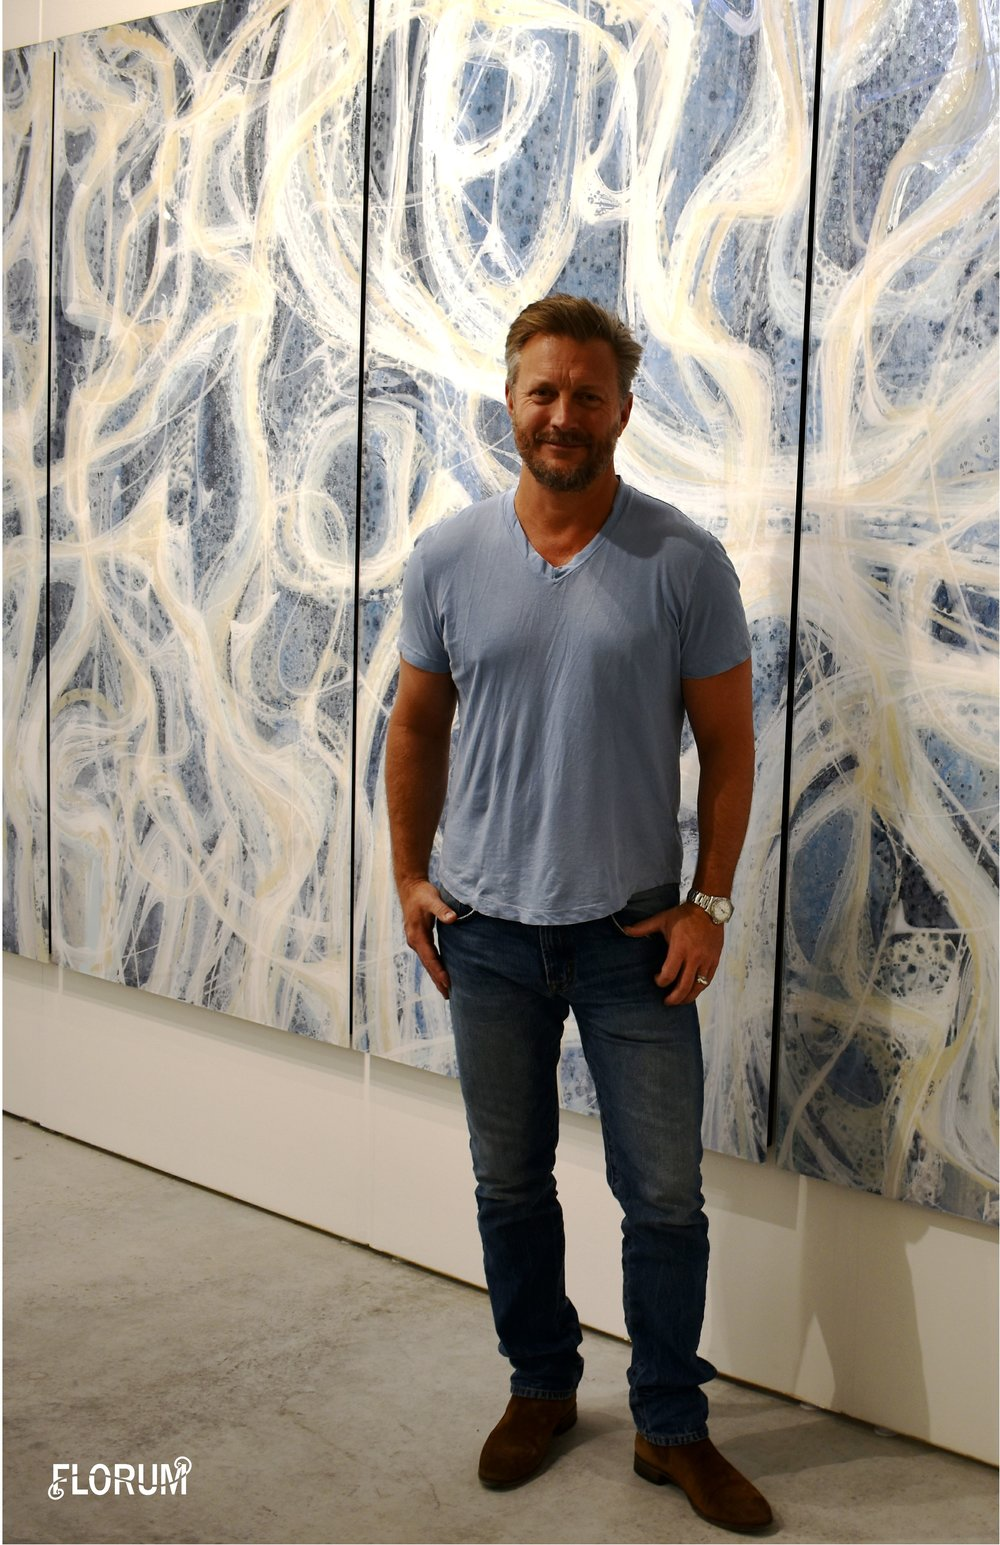 Christopher Martin - Aspen ColoradoOne of my favorite things about Art Basel is meeting so many artists and having the opportunity to talk with them.During Art Miami I had the pleasure to meet US based artist Christopher Martin who has showrooms in both Aspen and New York City.